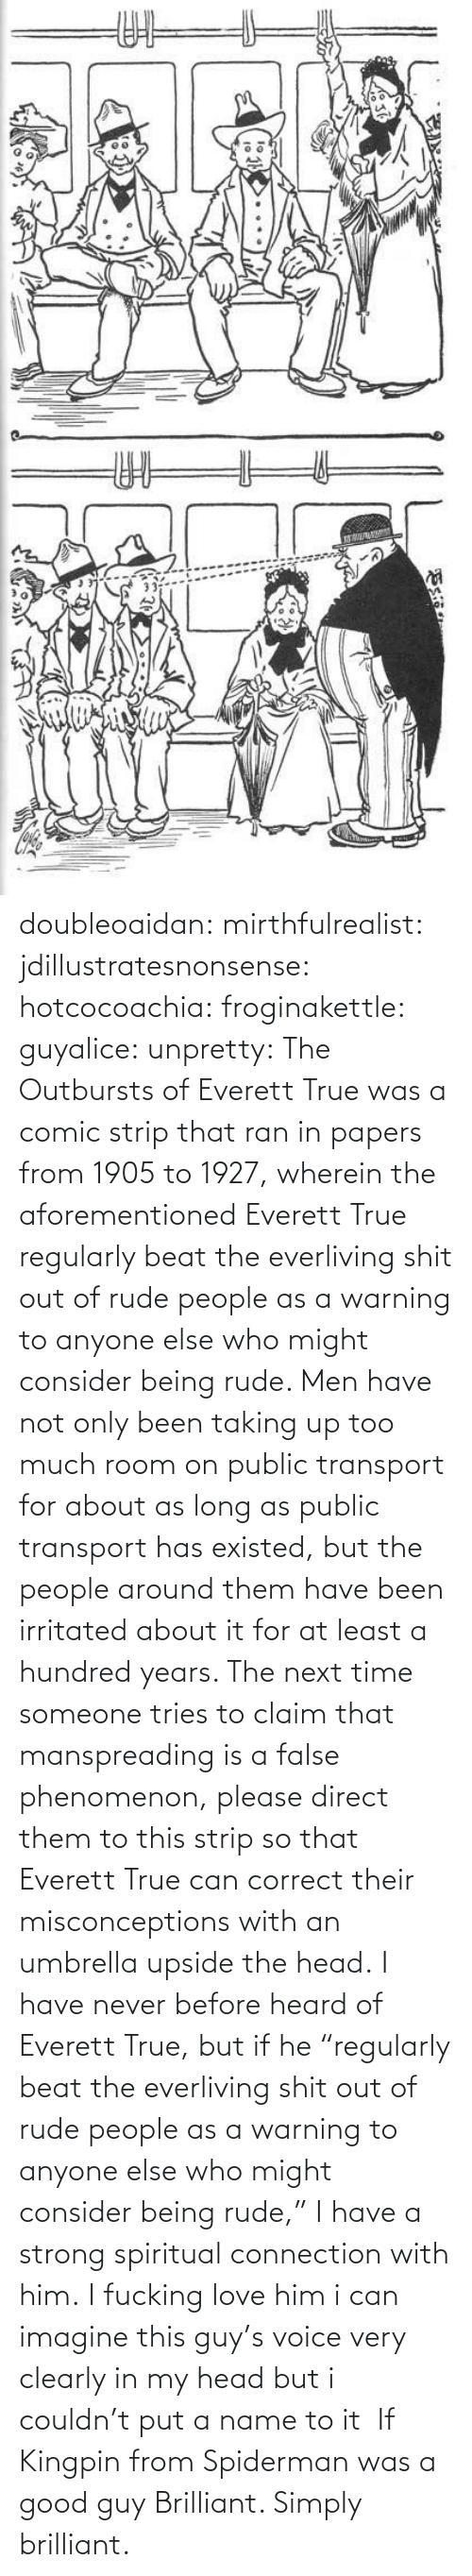 "wikipedia: doubleoaidan:  mirthfulrealist:  jdillustratesnonsense: hotcocoachia:  froginakettle:  guyalice:  unpretty:  The Outbursts of Everett True was a comic strip that ran in papers from 1905 to 1927, wherein the aforementioned Everett True regularly beat the everliving shit out of rude people as a warning to anyone else who might consider being rude. Men have not only been taking up too much room on public transport for about as long as public transport has existed, but the people around them have been irritated about it for at least a hundred years. The next time someone tries to claim that manspreading is a false phenomenon, please direct them to this strip so that Everett True can correct their misconceptions with an umbrella upside the head.  I have never before heard of Everett True, but if he ""regularly beat the everliving shit out of rude people as a warning to anyone else who might consider being rude,"" I have a strong spiritual connection with him.   I fucking love him  i can imagine this guy's voice very clearly in my head but i couldn't put a name to it   If Kingpin from Spiderman was a good guy   Brilliant. Simply brilliant."